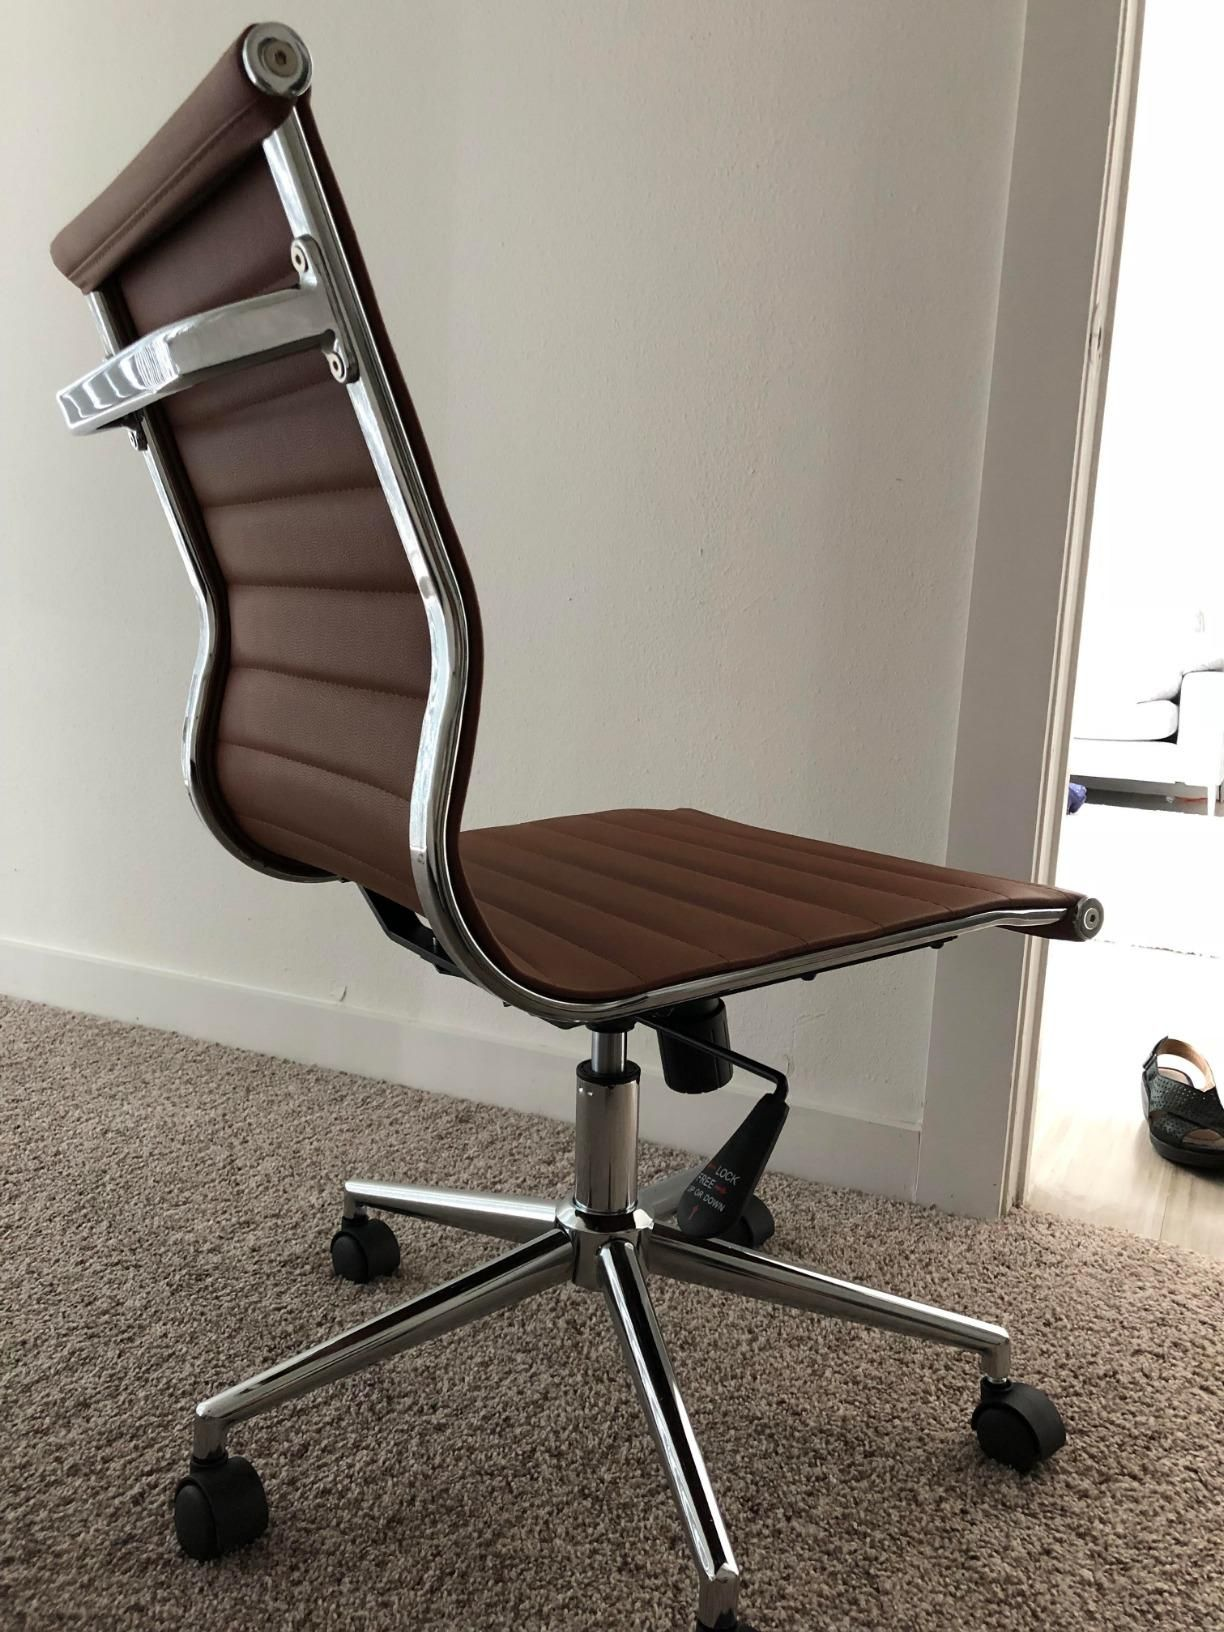 Adjustable height mid back armless office ribbed chair on